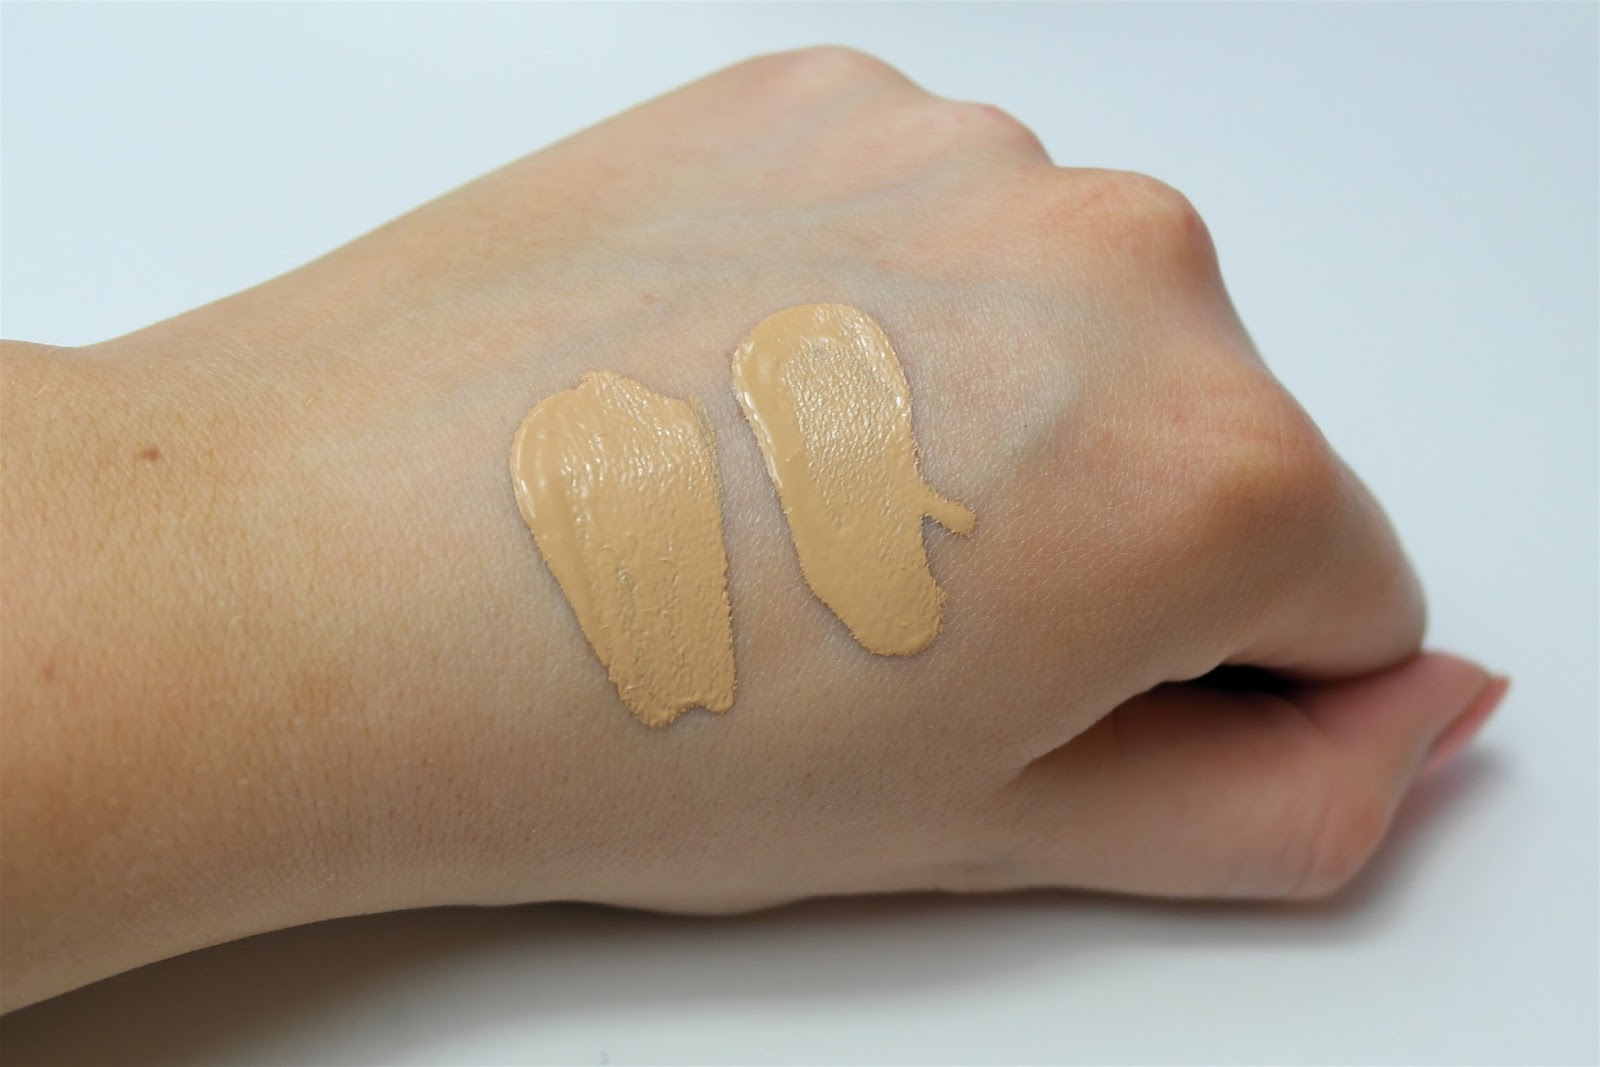 Nars Sheer glow and All day luminous weightless in fuji